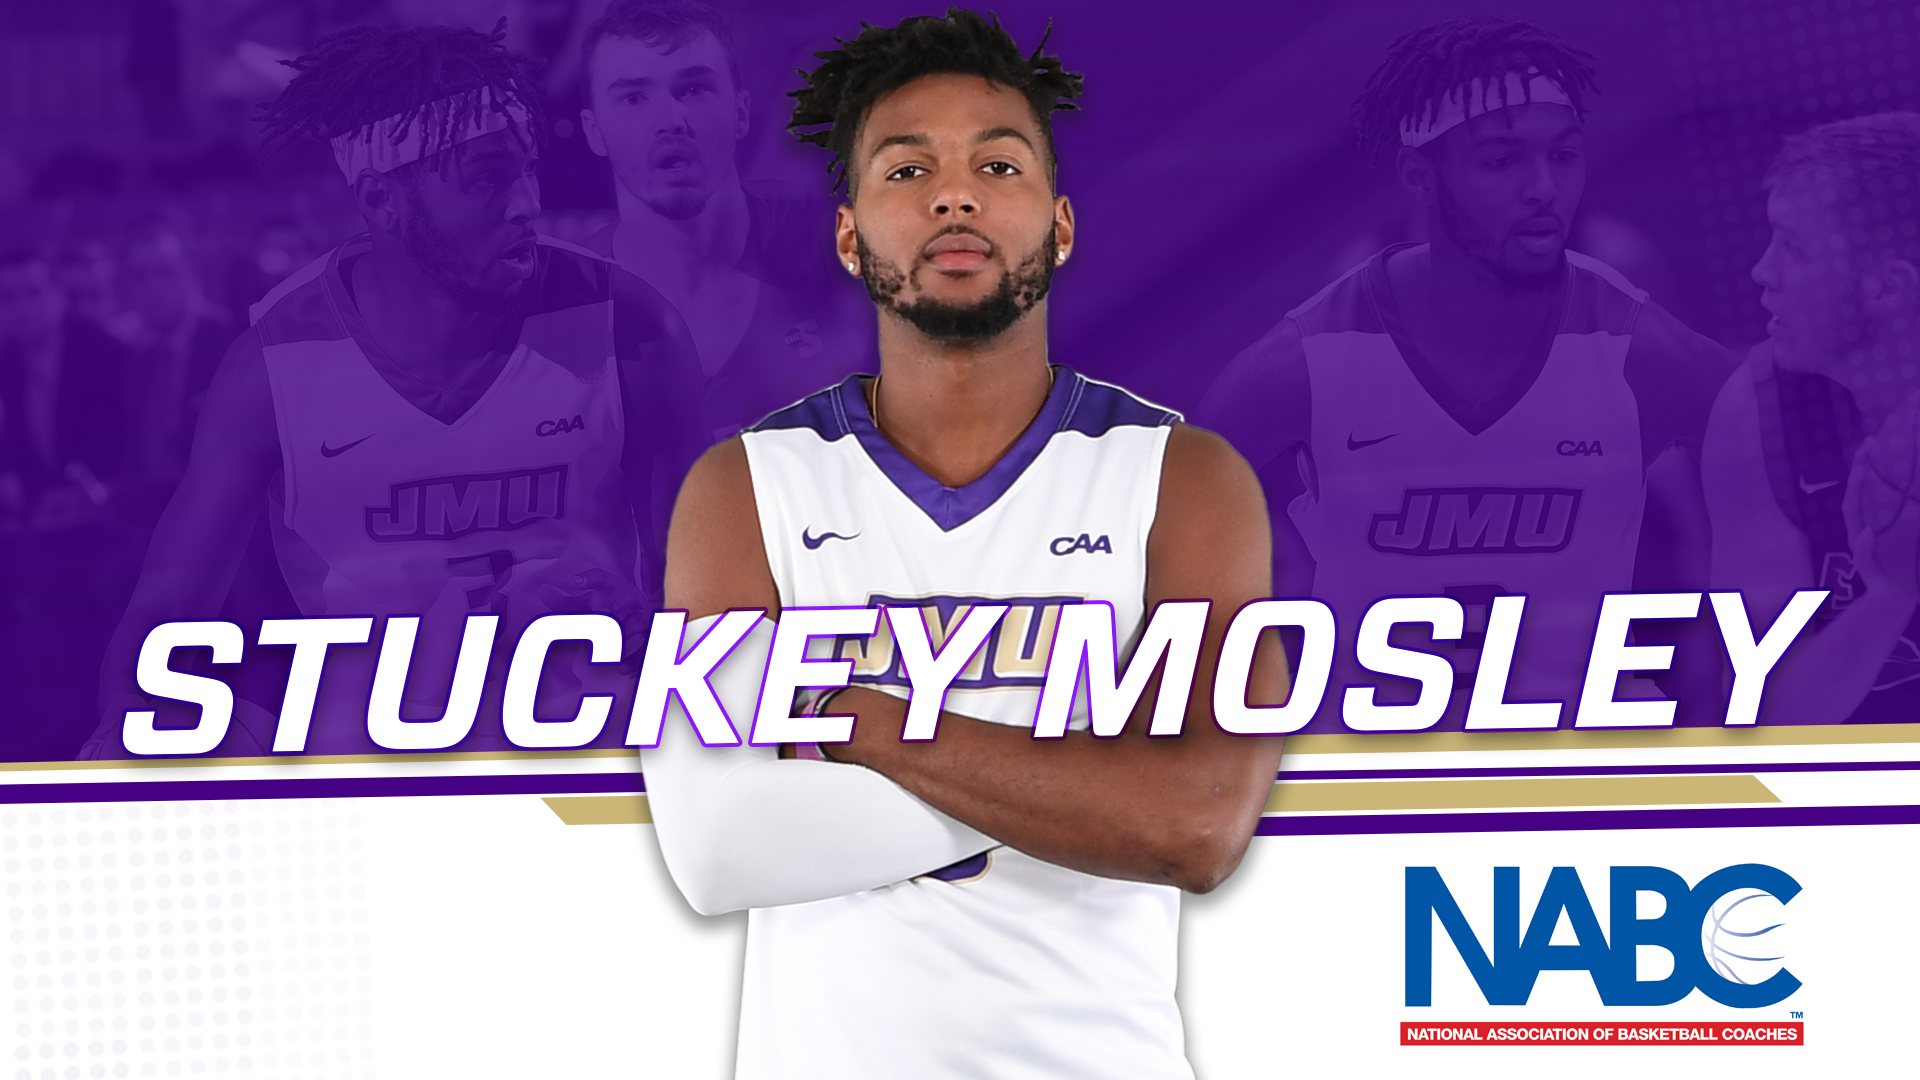 Men's Basketball: Mosley Earns All-District Honors